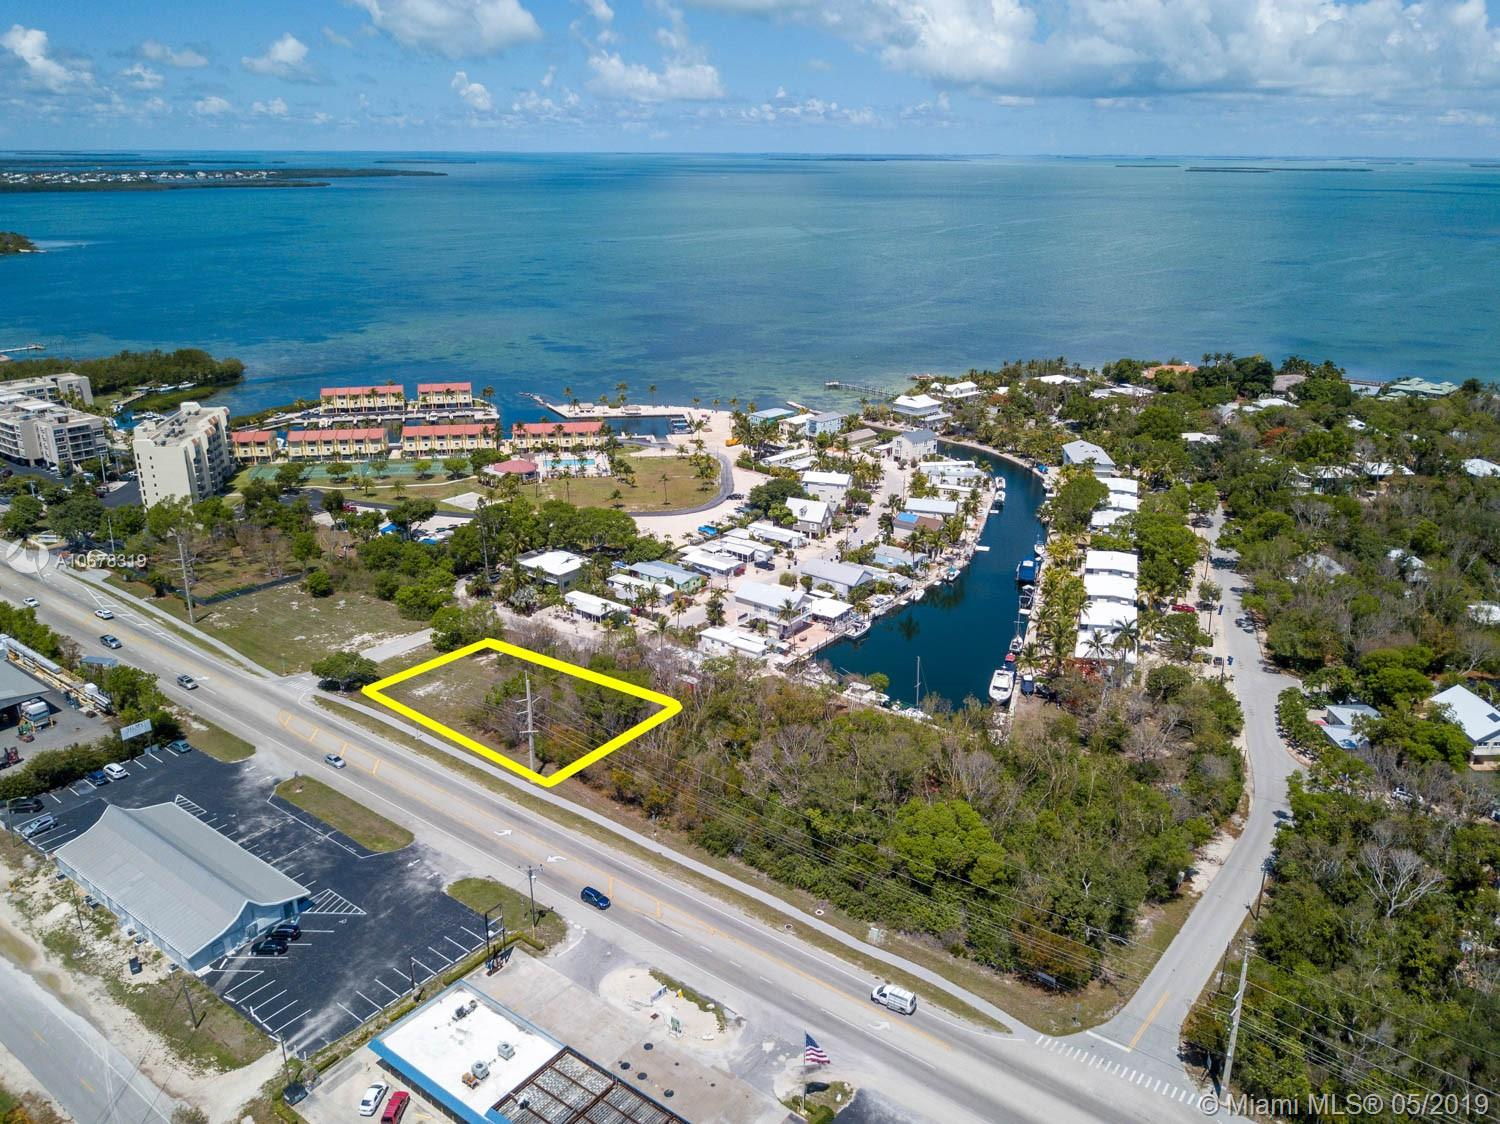 MM 88.62 Overseas Hwy & Village St, Other City - Keys/Islands/Caribbean, FL 33070